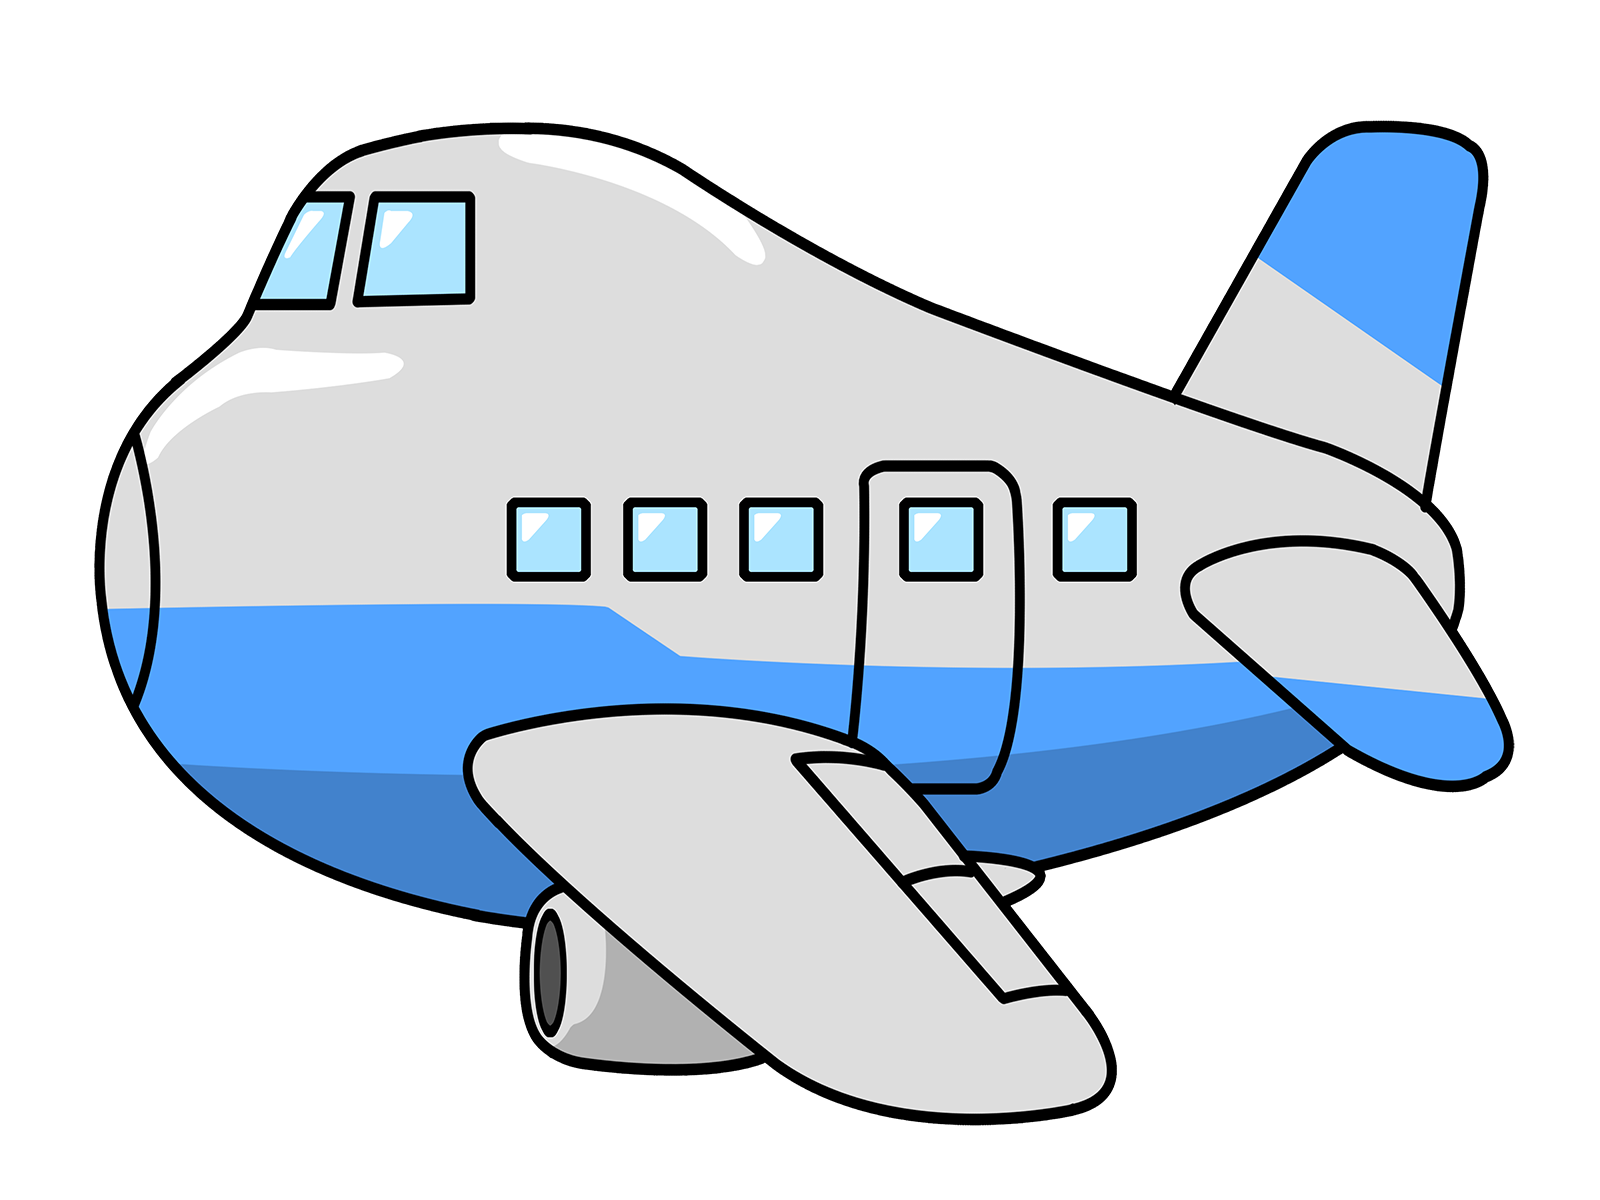 svg Families clipart airplane. Use this clip art